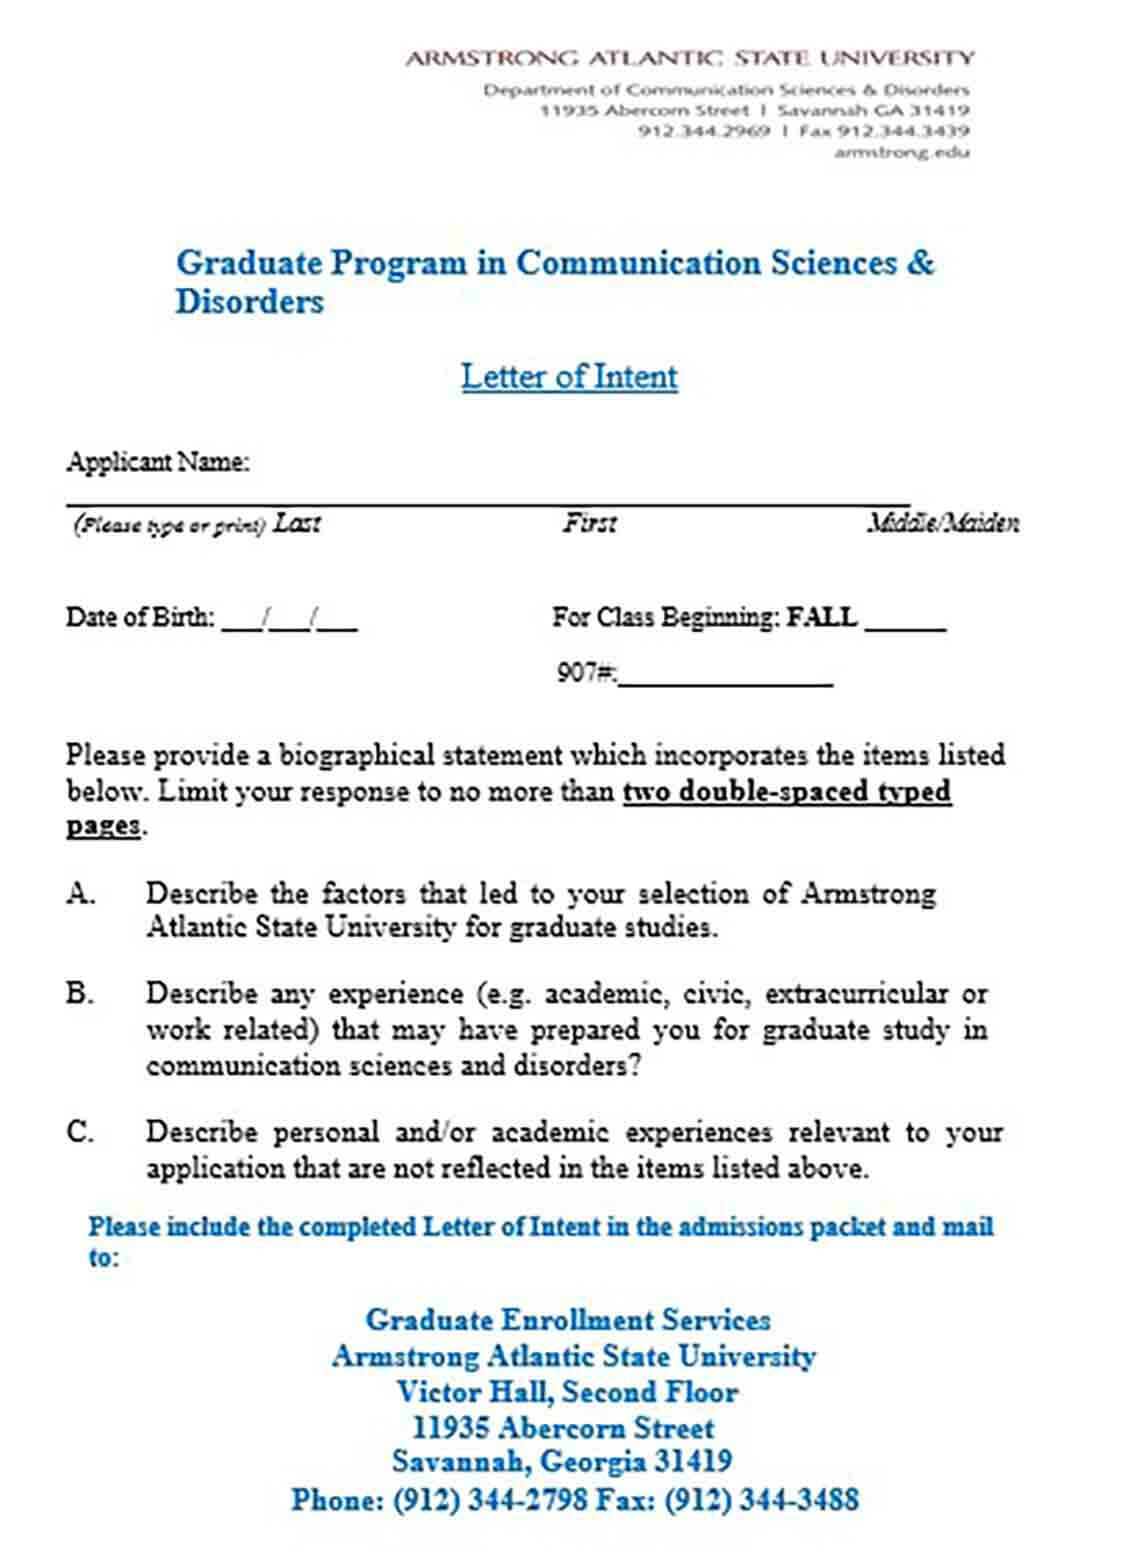 Letter of Intent Graduate School Science